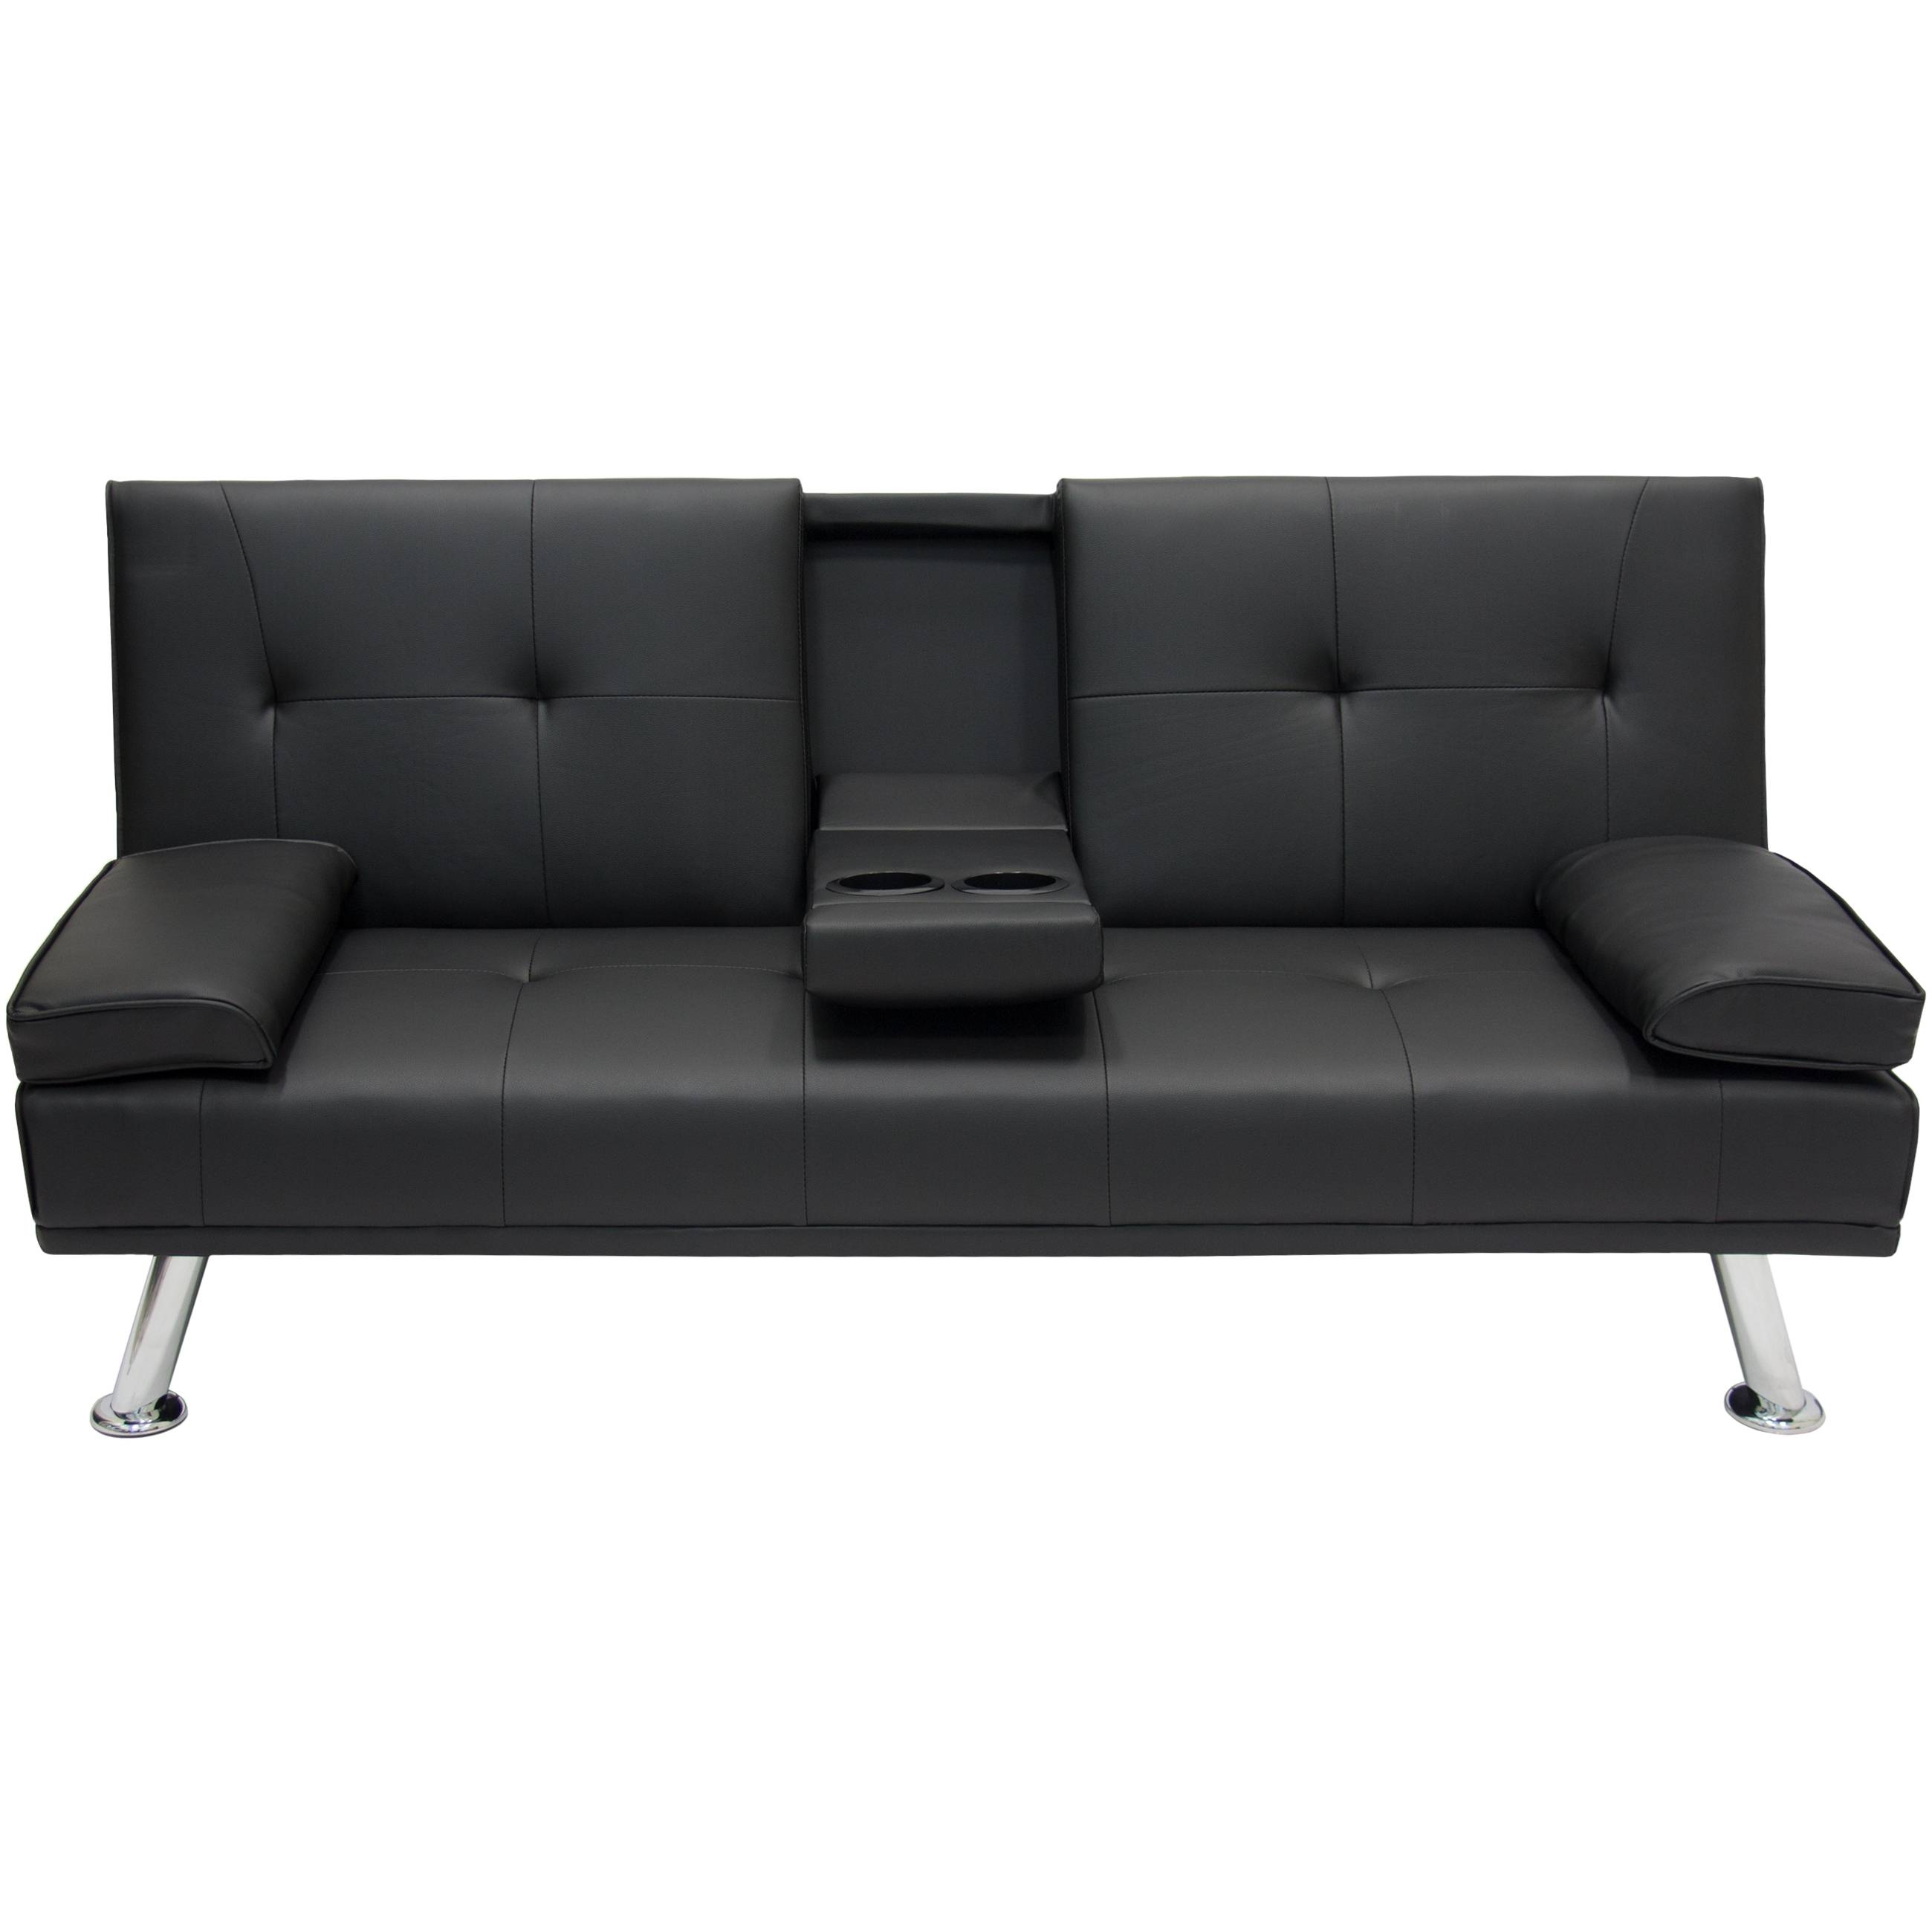 Entertainment Furniture Futon Sofa Bed Fold Up Down Recliner Couch intended for Small Black Futon Sofa Beds (Image 5 of 15)